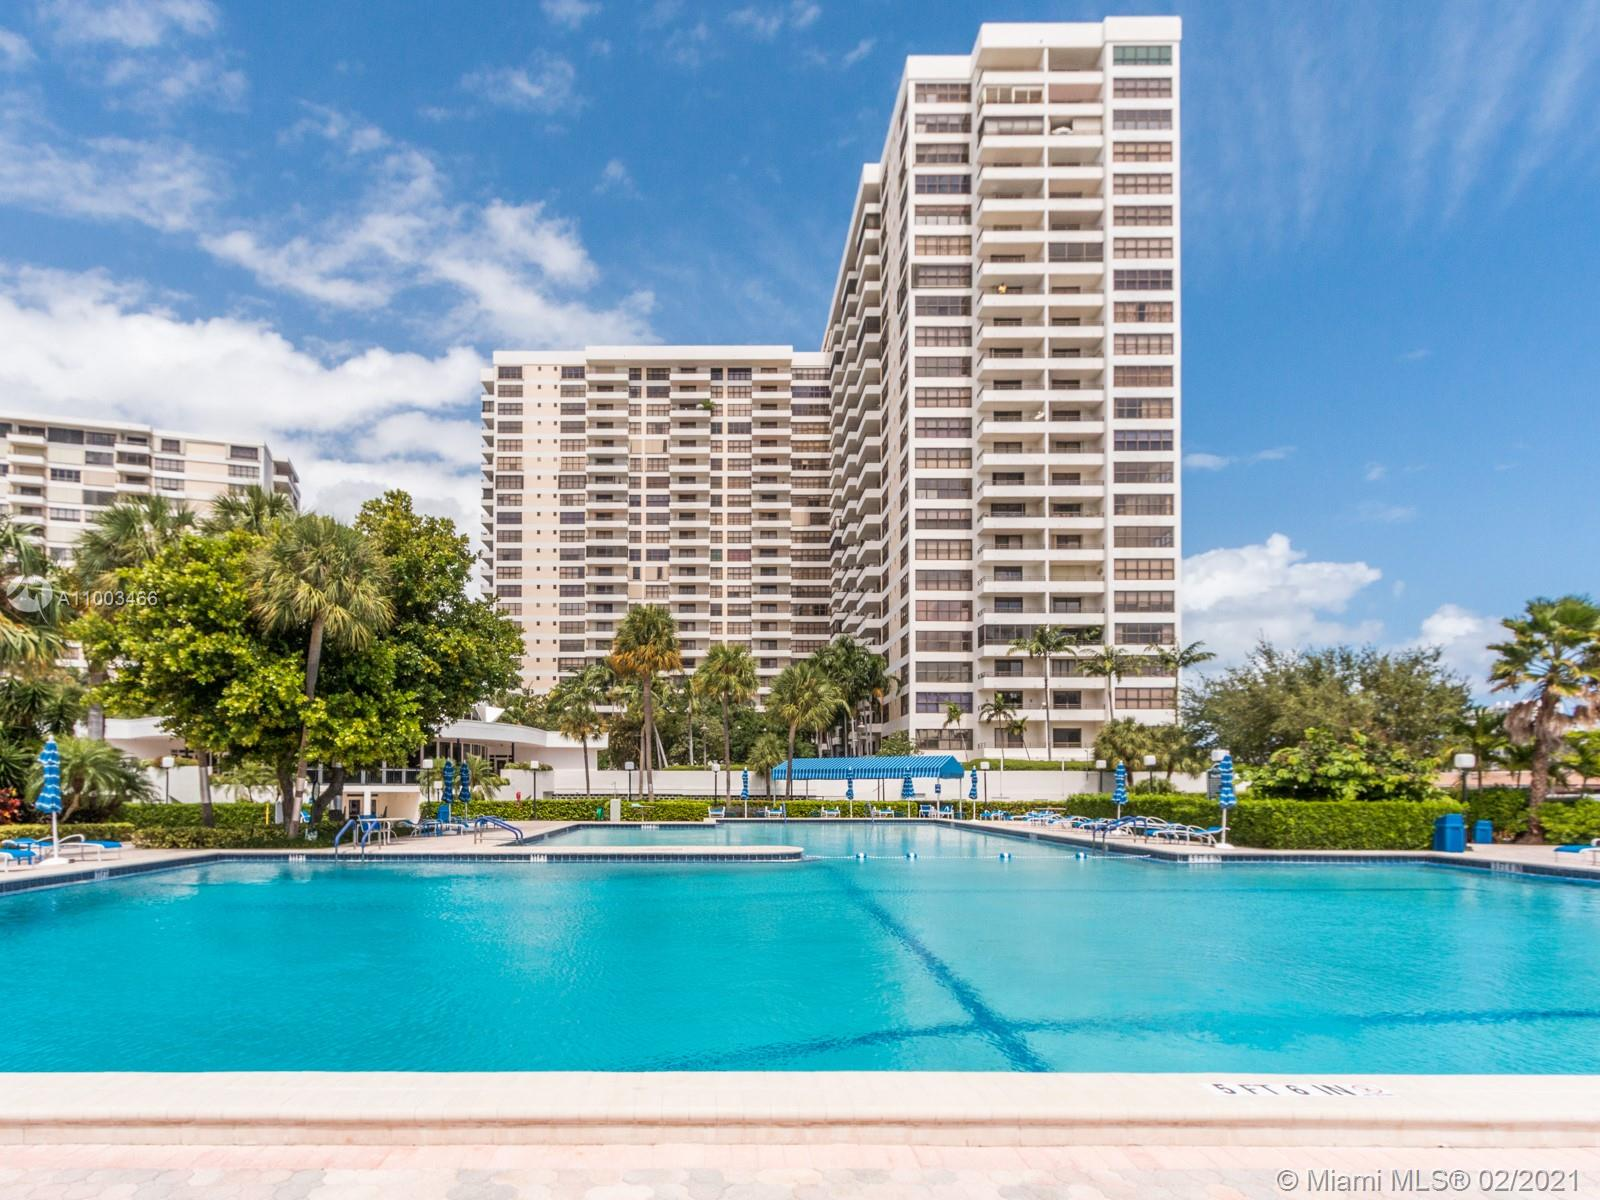 Photo of 600 Three Islands Blvd #1815, Hallandale Beach, Florida, 33009 - MARINA POOL AREA